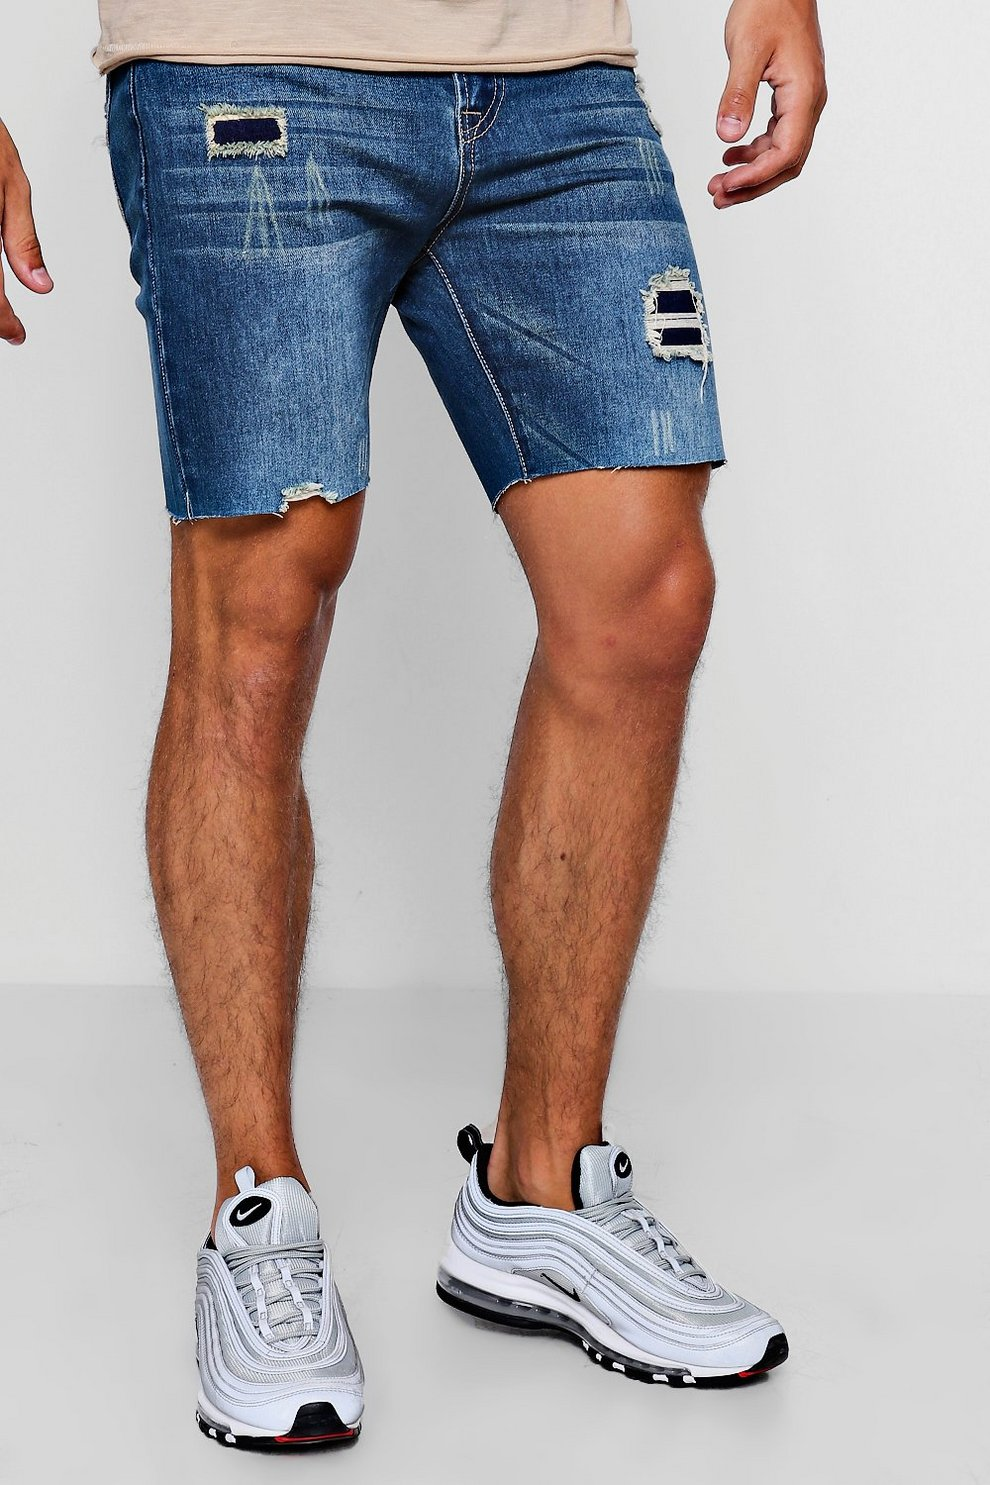 Slim Fit Denim Shorts With Patchwork Distressing  7aec09f59be4